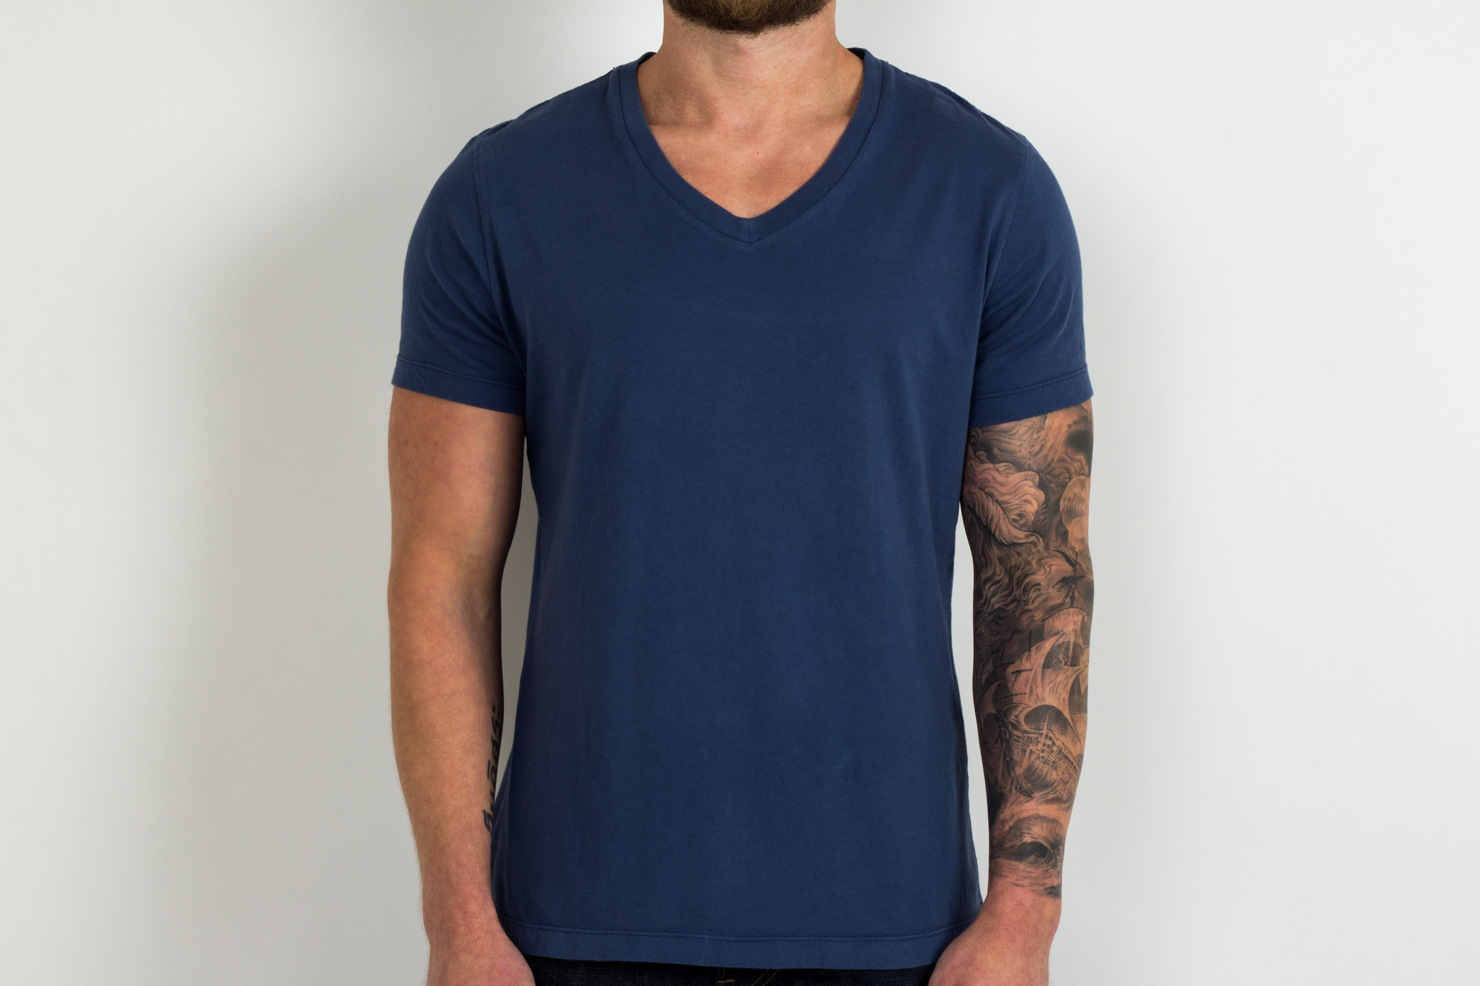 Pistol Lake V-neck T-shirt